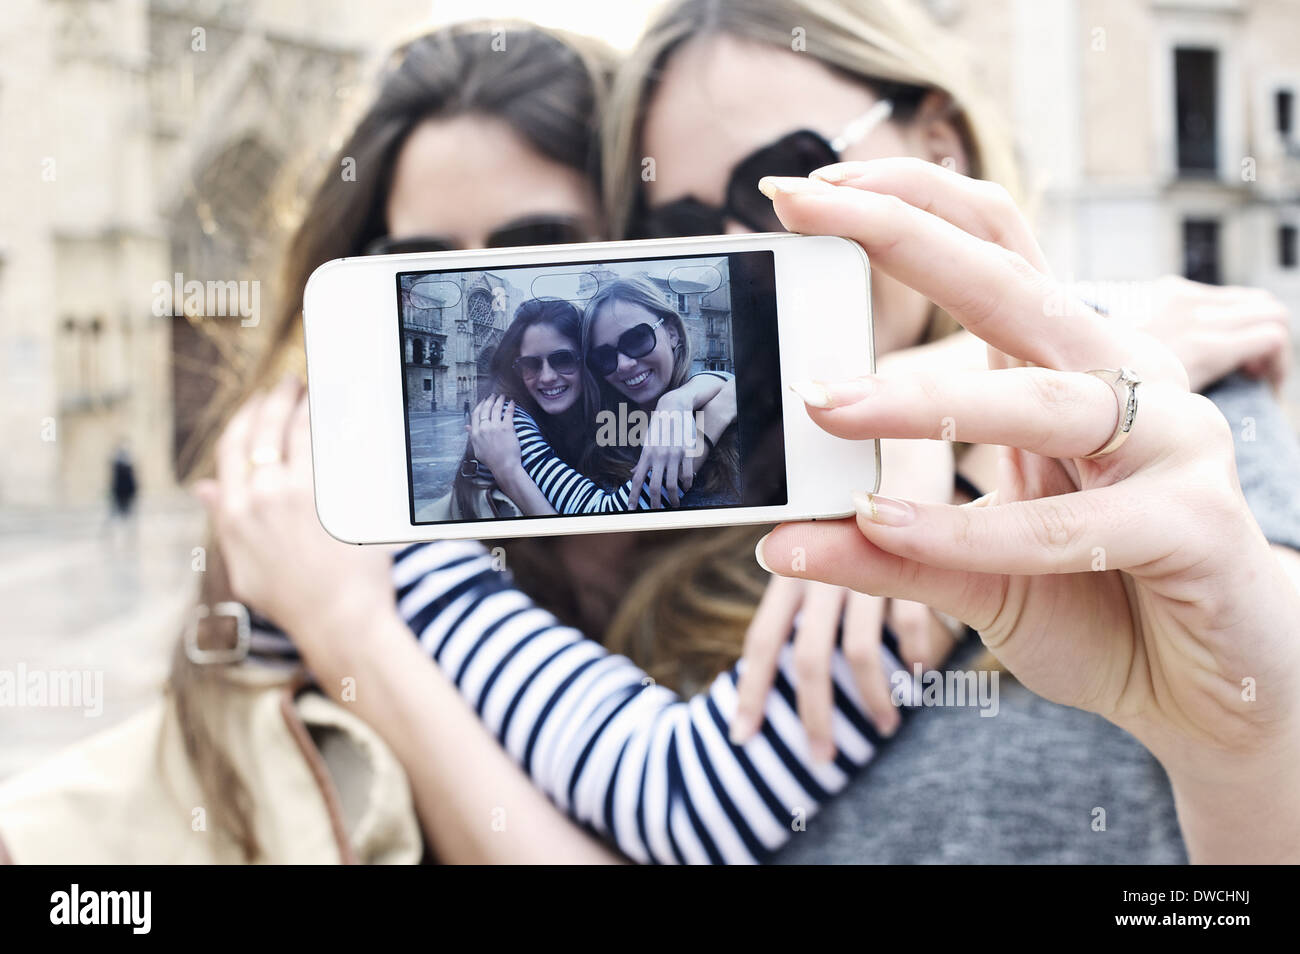 Two young female friends taking a self portrait, Valencia, Spain - Stock Image